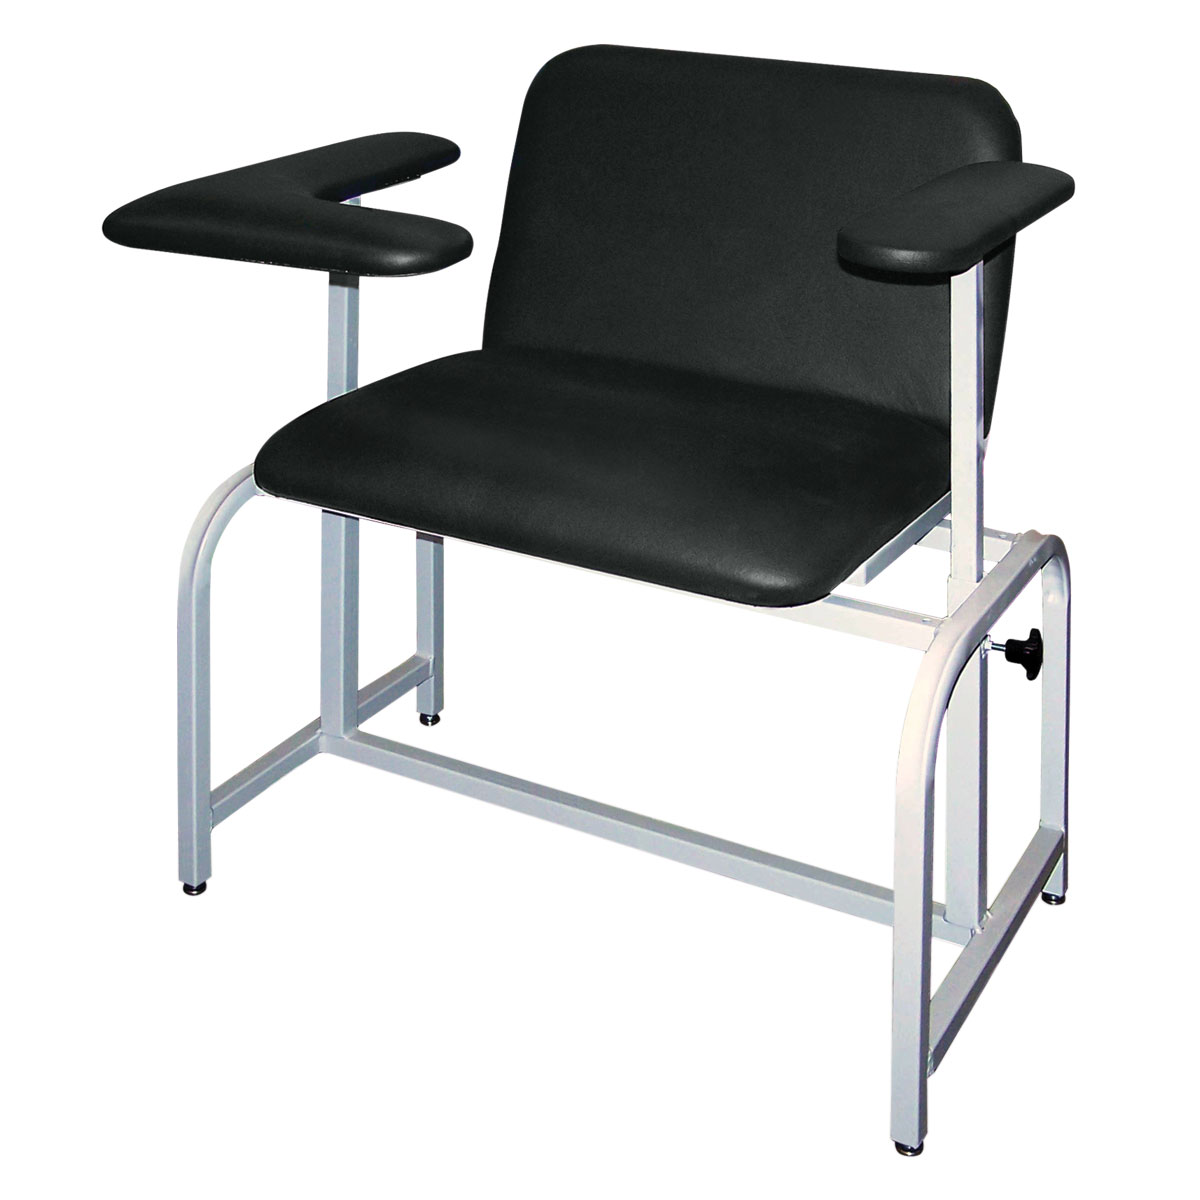 Bariatric Blood Drawing Chair W50555 Hausmann 2198